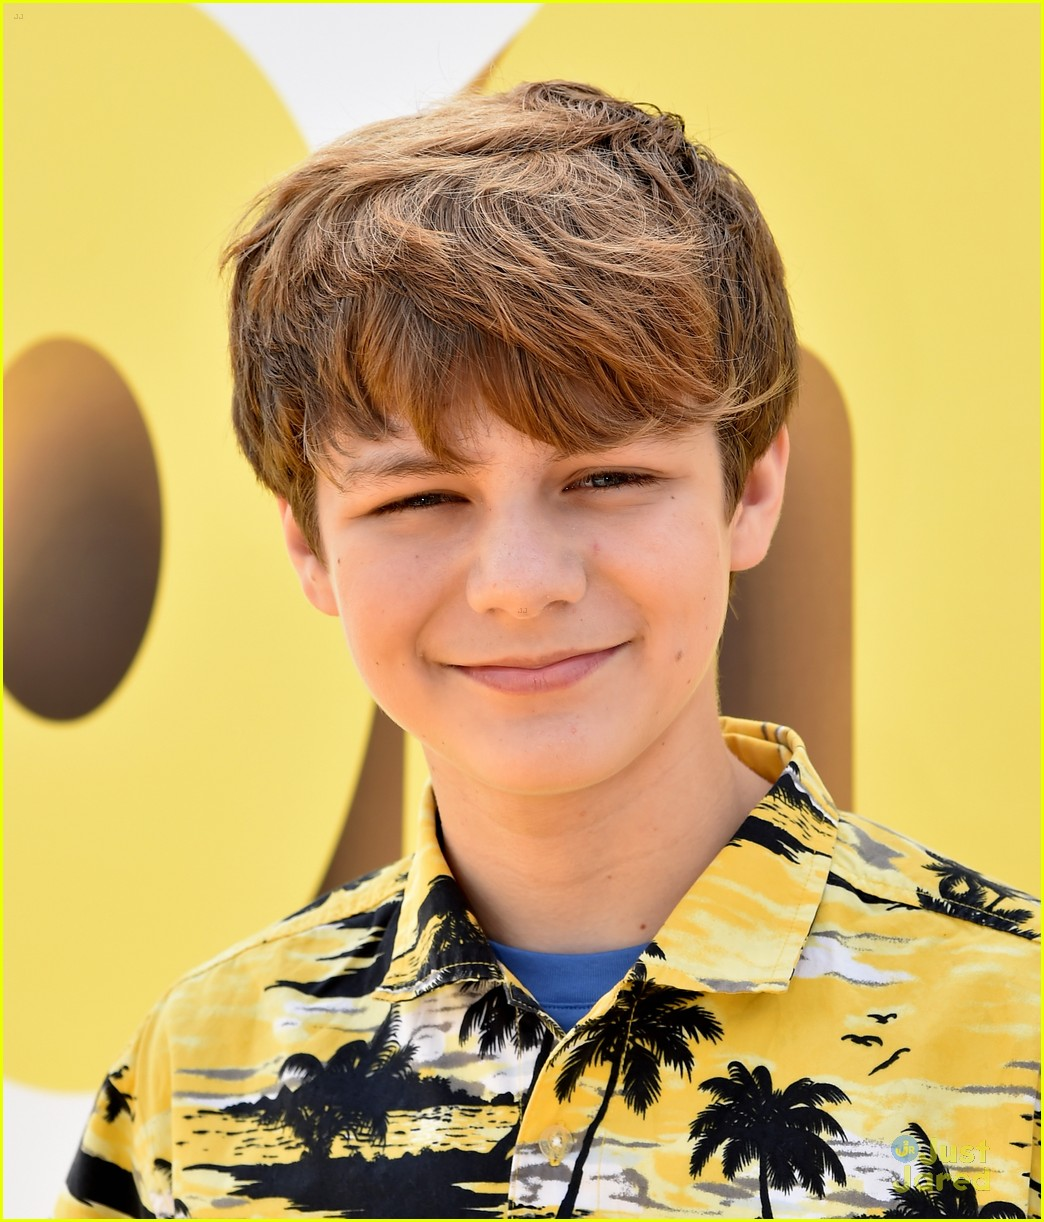 ty simpkins hostty simpkins instagram, ty simpkins 2017, ty simpkins gif, ty simpkins barefoot, ty simpkins and sara david, ty simpkins model, ty simpkins getty images, ty simpkins woman, ty simpkins facebook, ty simpkins family, ty simpkins imdb, ty simpkins host, ty simpkins the fumble, ty simpkins height